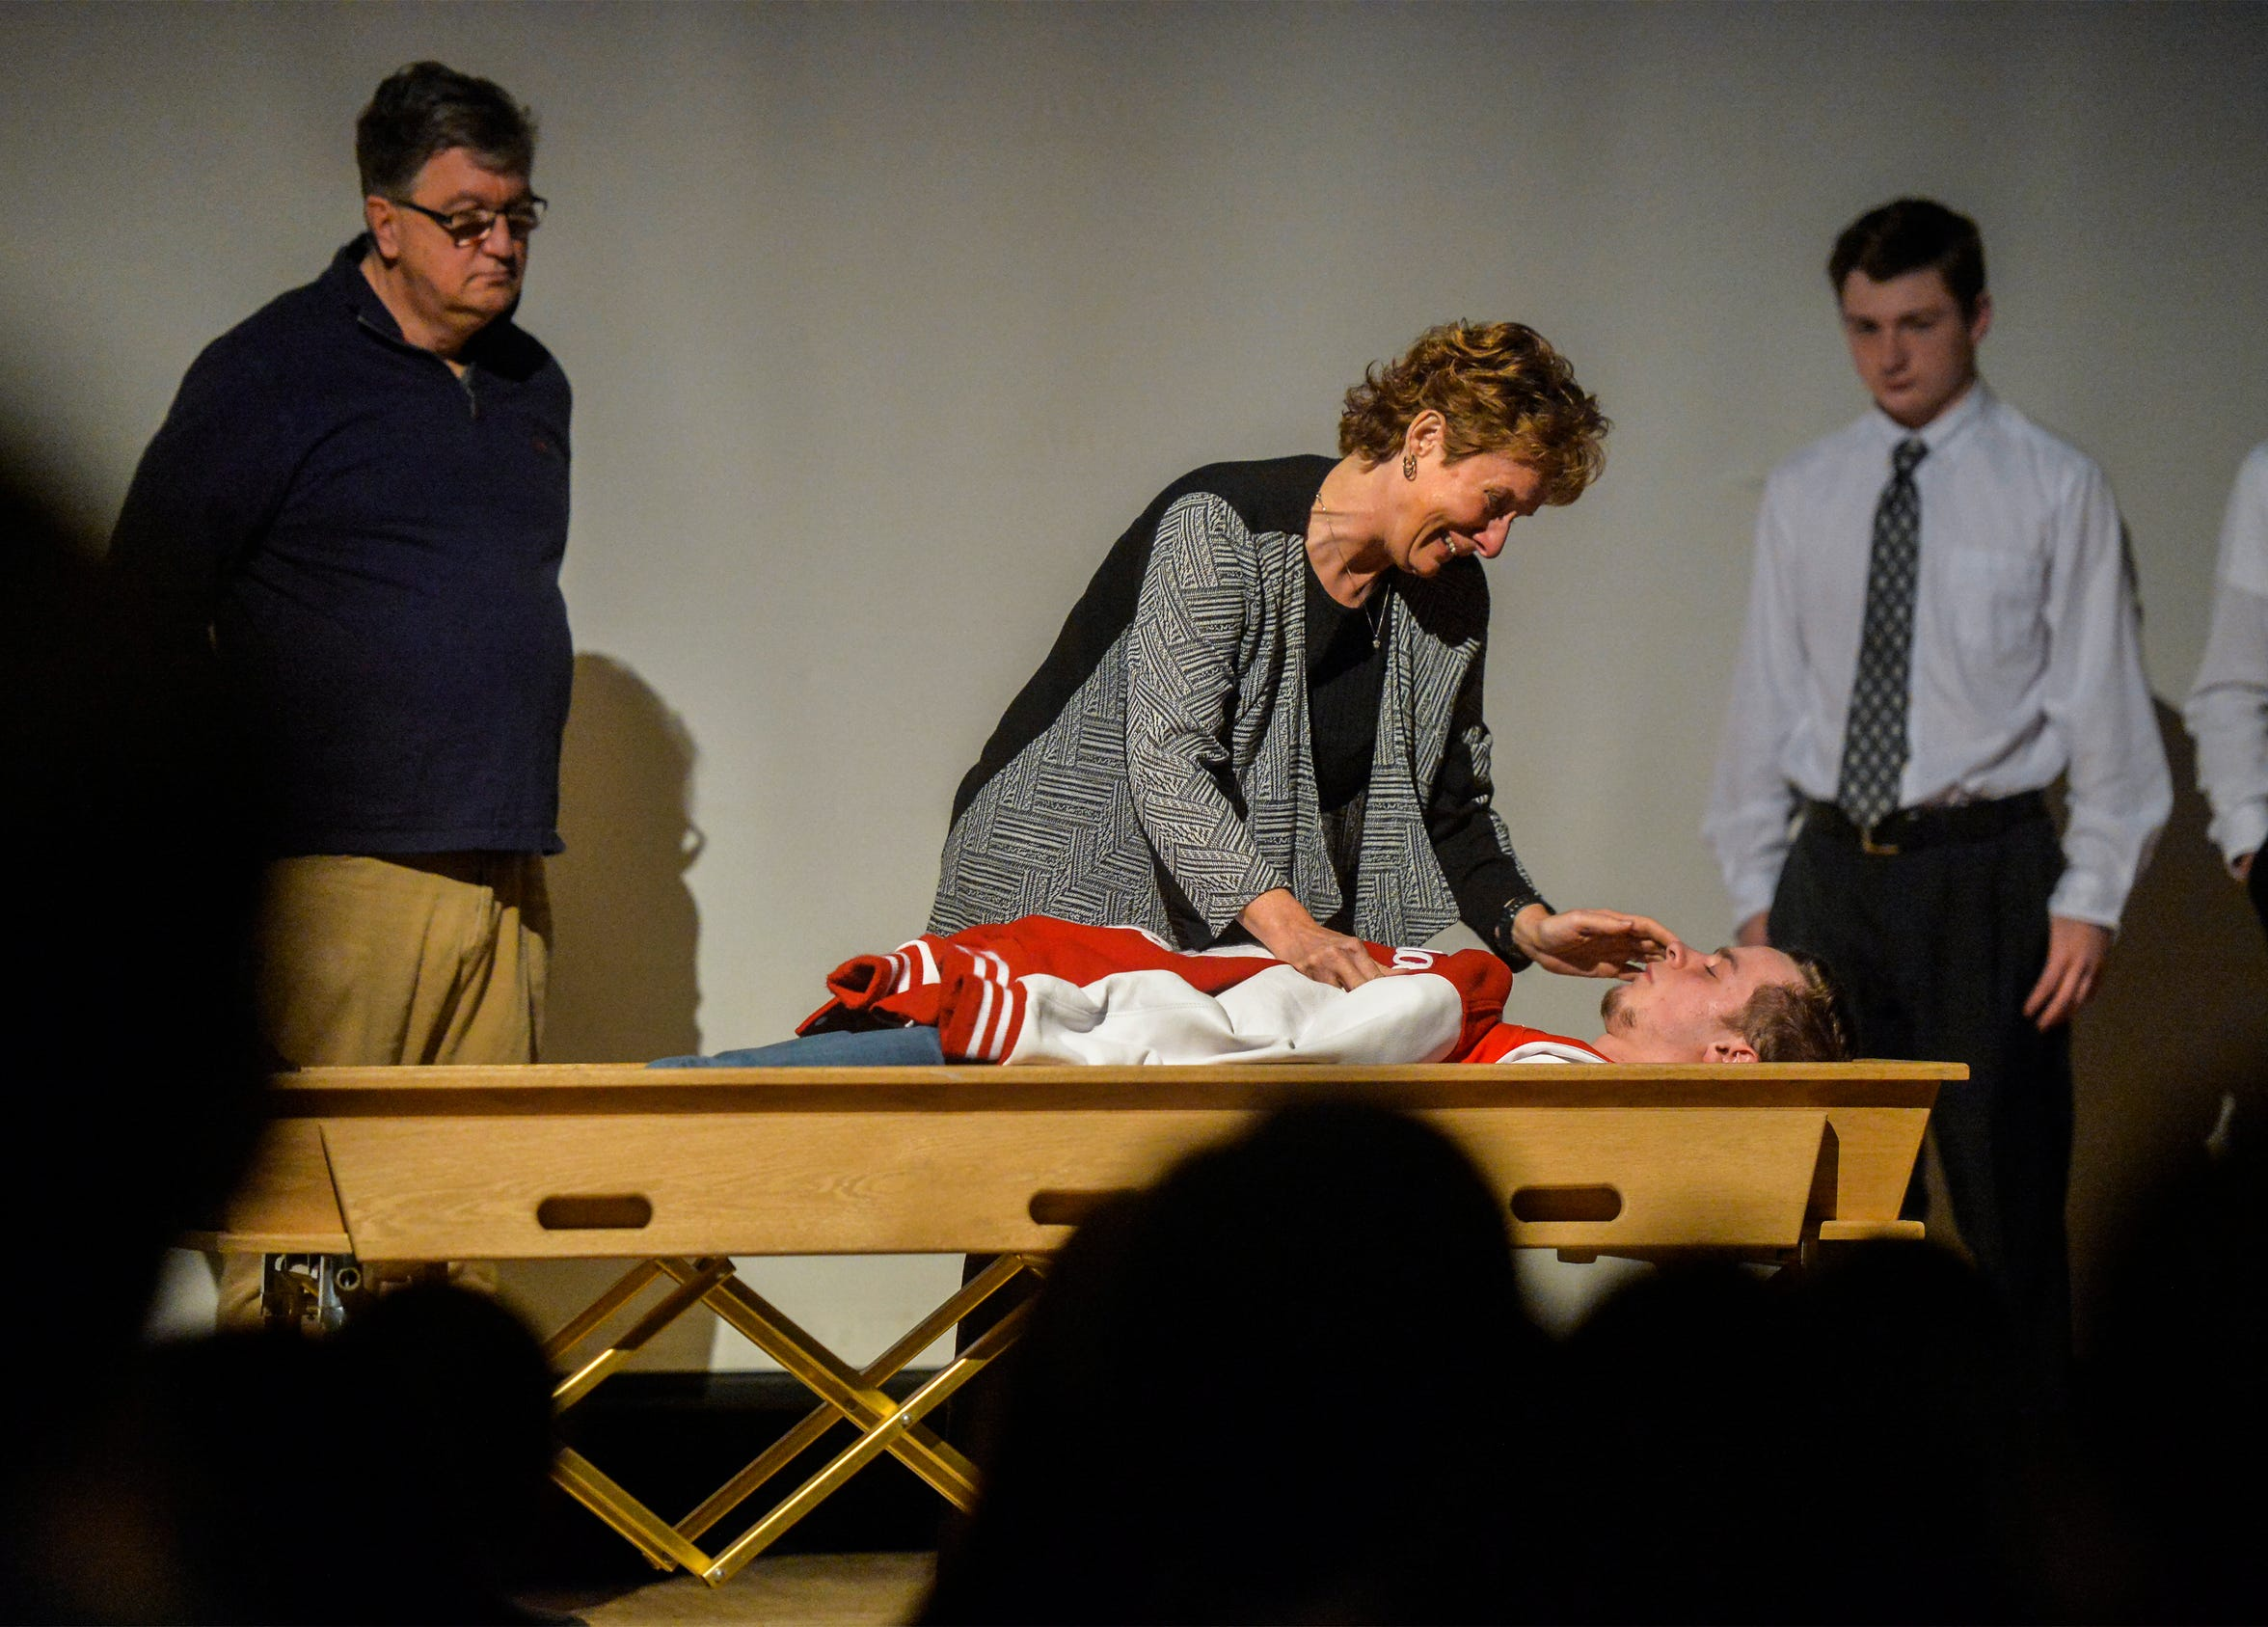 Wendy Paulsen, an actor, plays the role of Conrad student Andrew Ginther's mother at a mock memorial service as part of Conrad's Ghost Out program.  The Ghost Out program presents the dangers of drinking and driving through mock crash scenes and court proceedings.